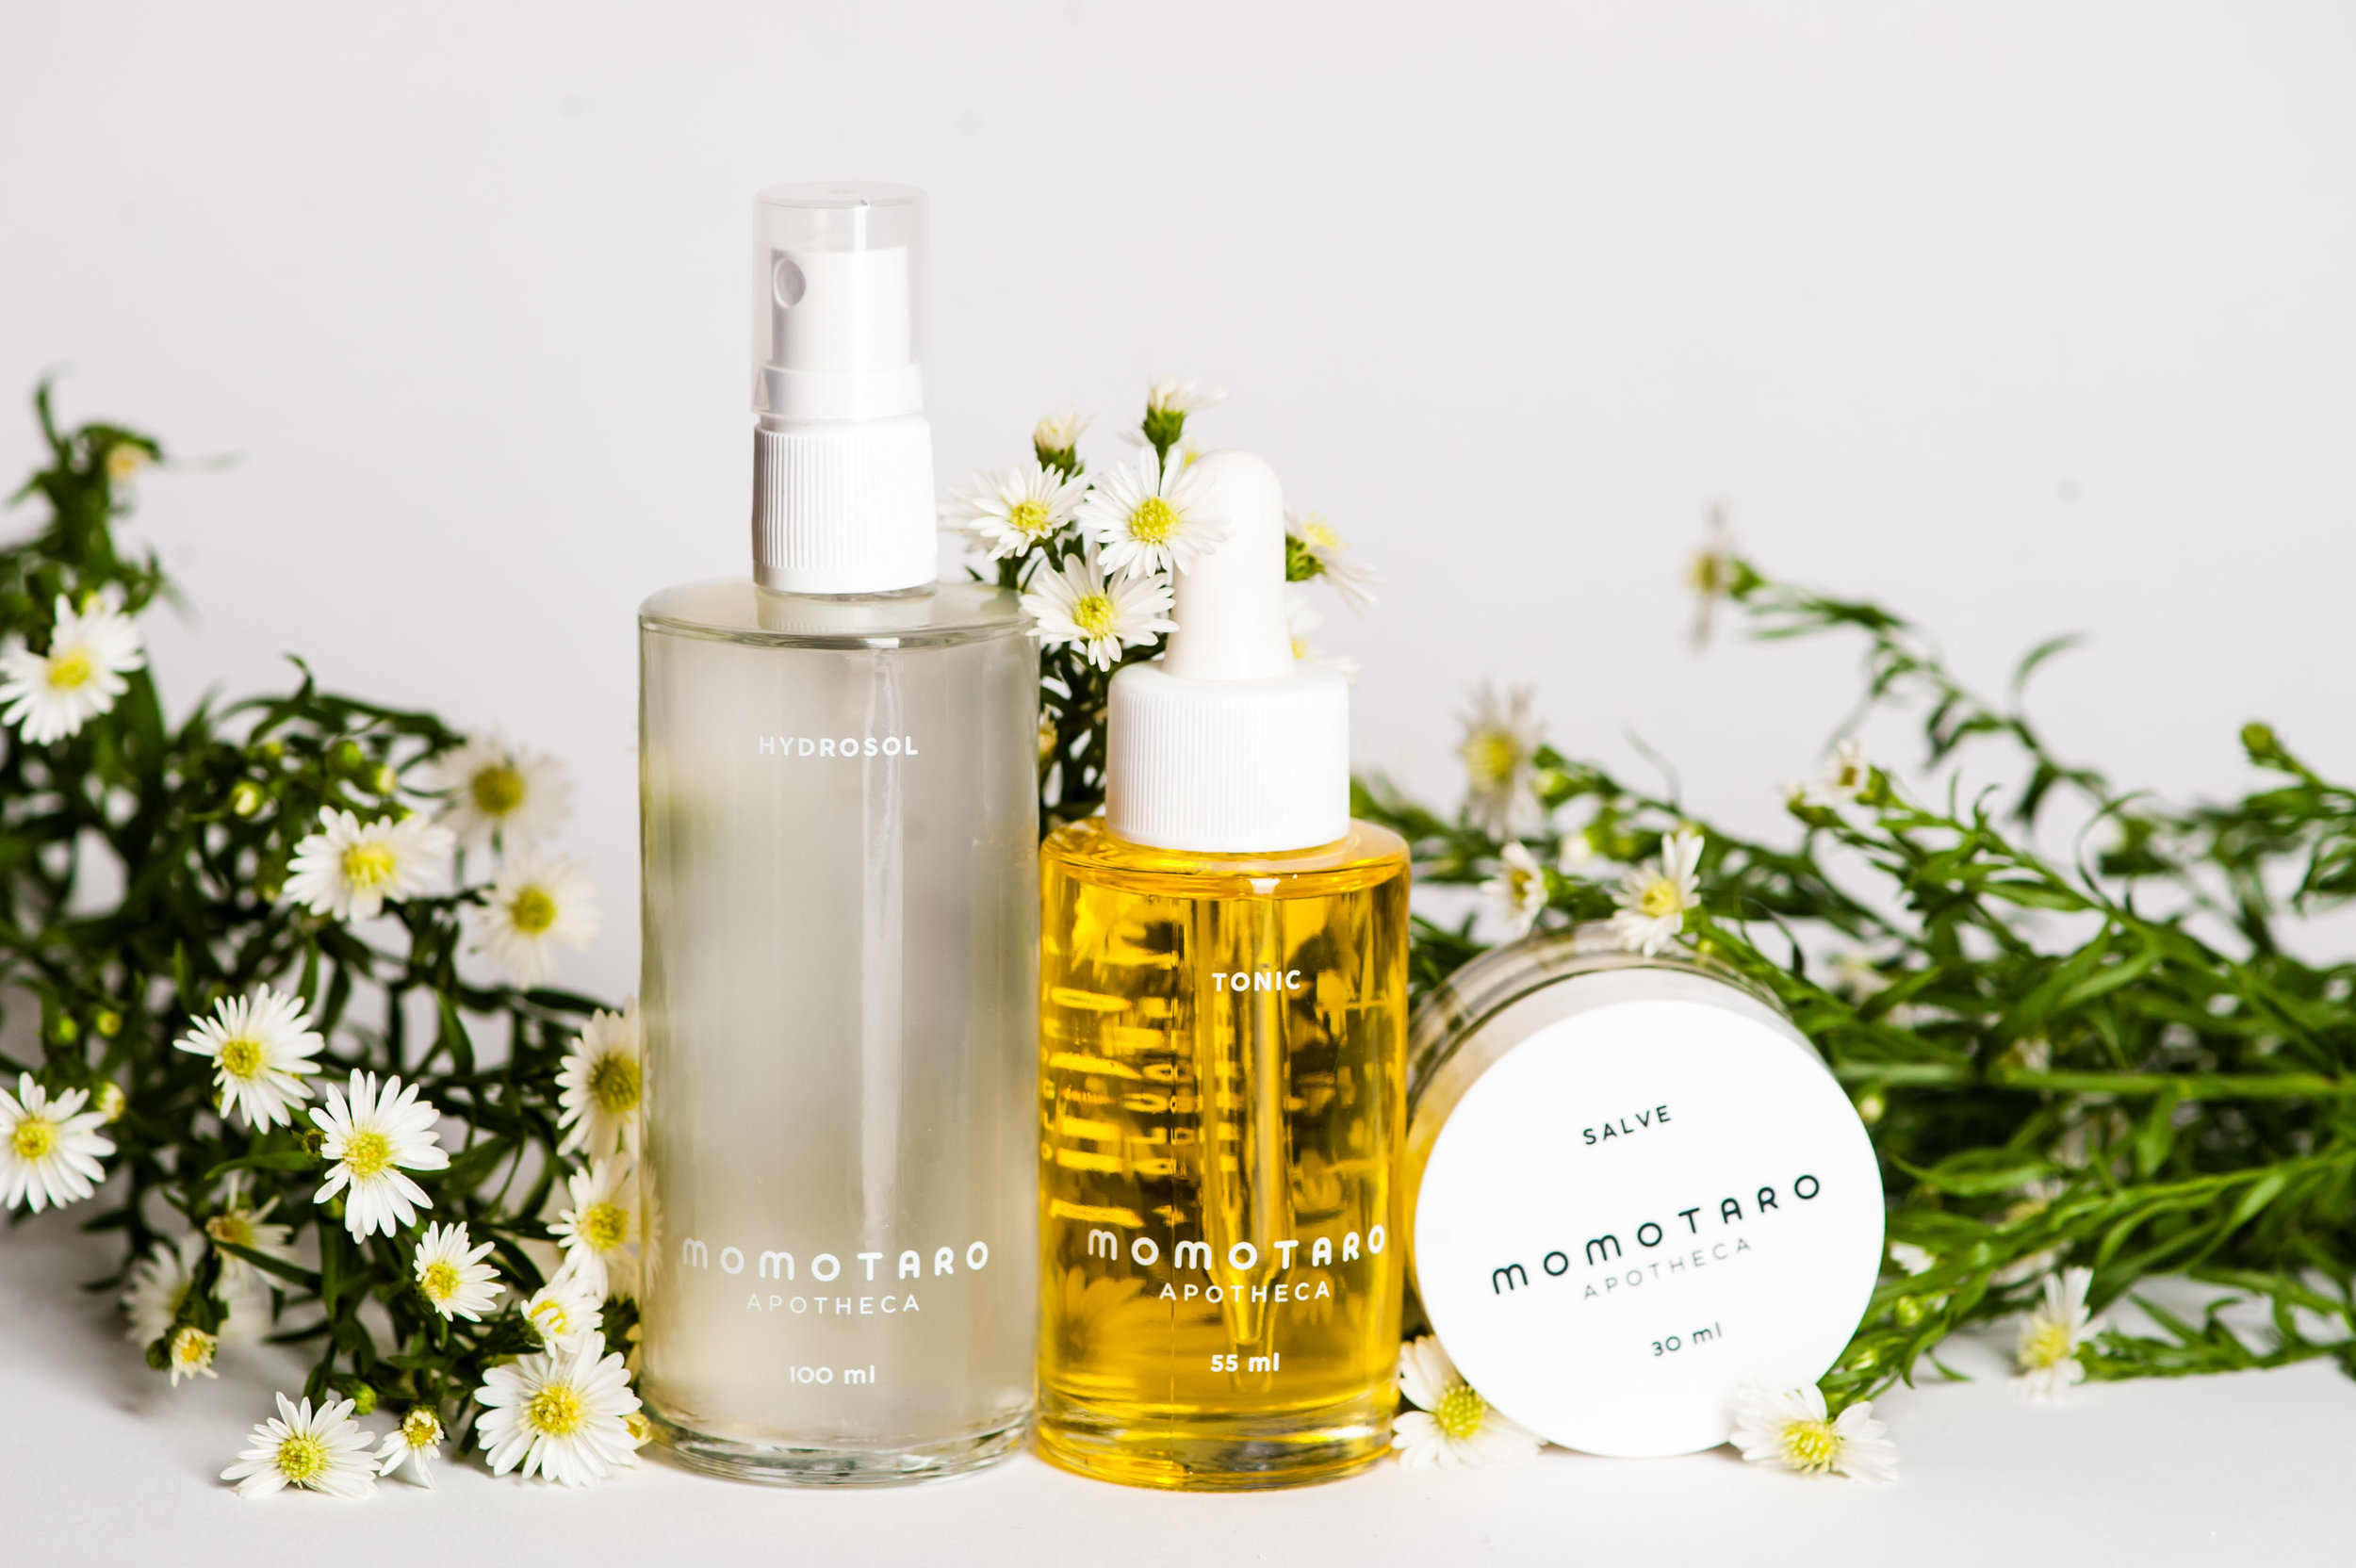 Lindsay Wynn and her partner created Momotaro Apotheca to fill a need in the vaginal wellness space. Their products are simple and pure.